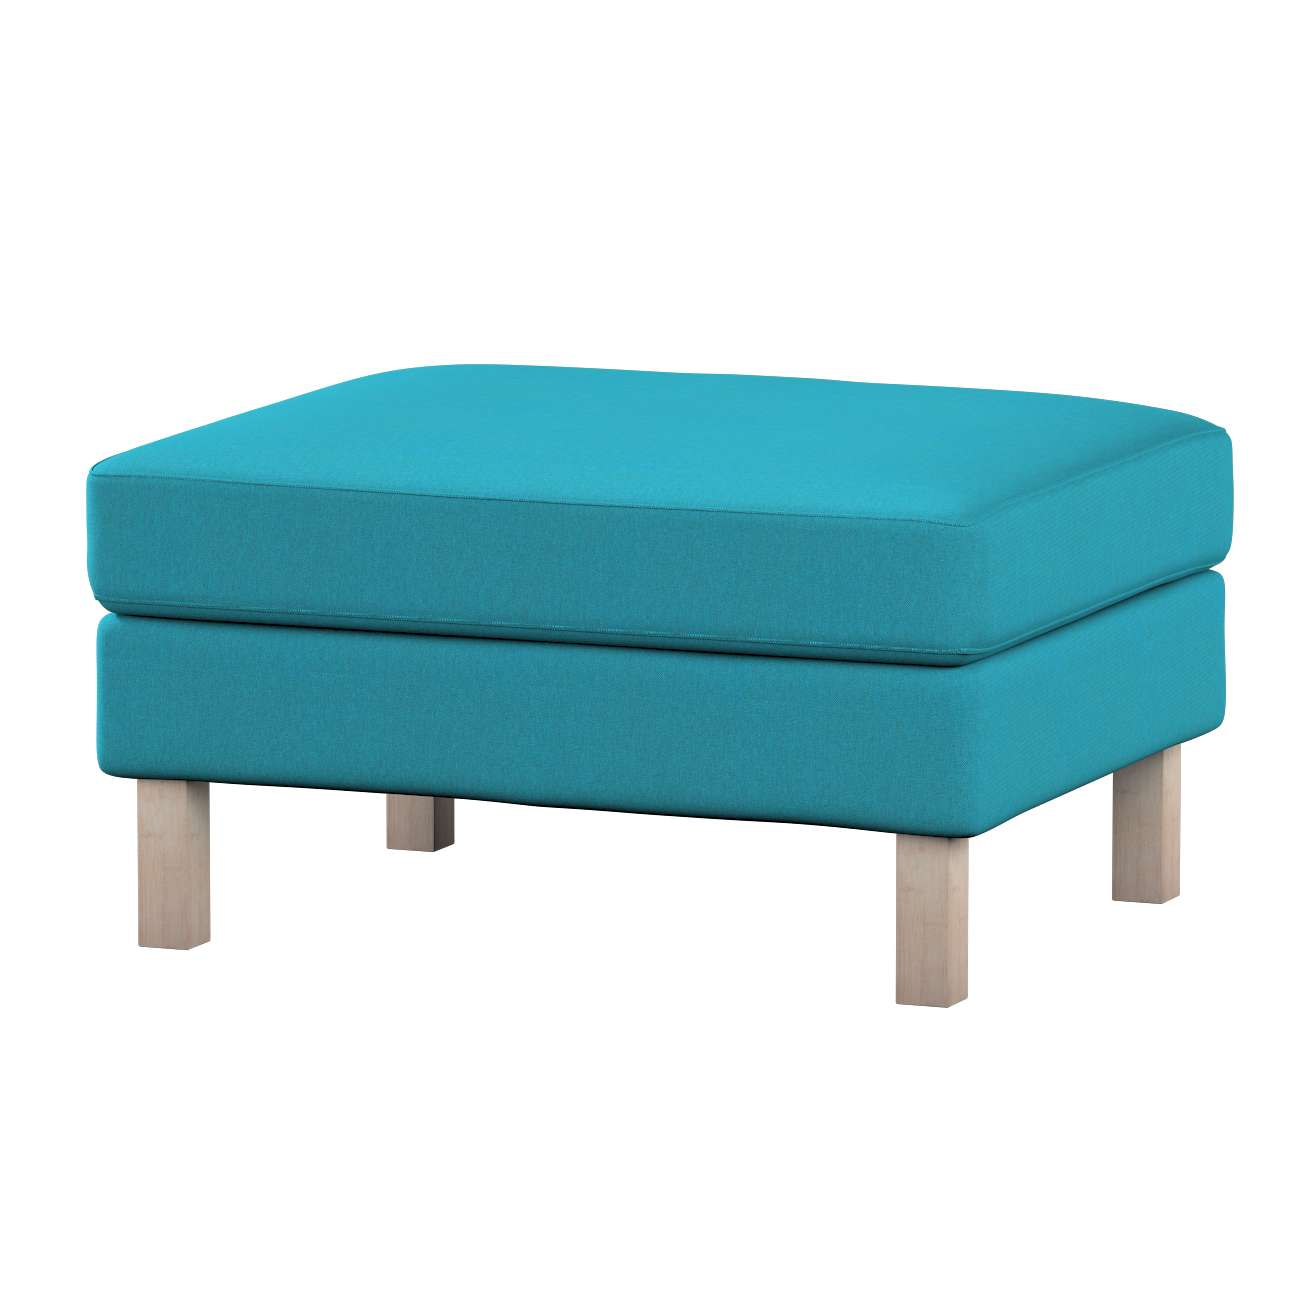 Karlstad footstool cover Karlstad footstool cover in collection Etna, fabric: 705-16